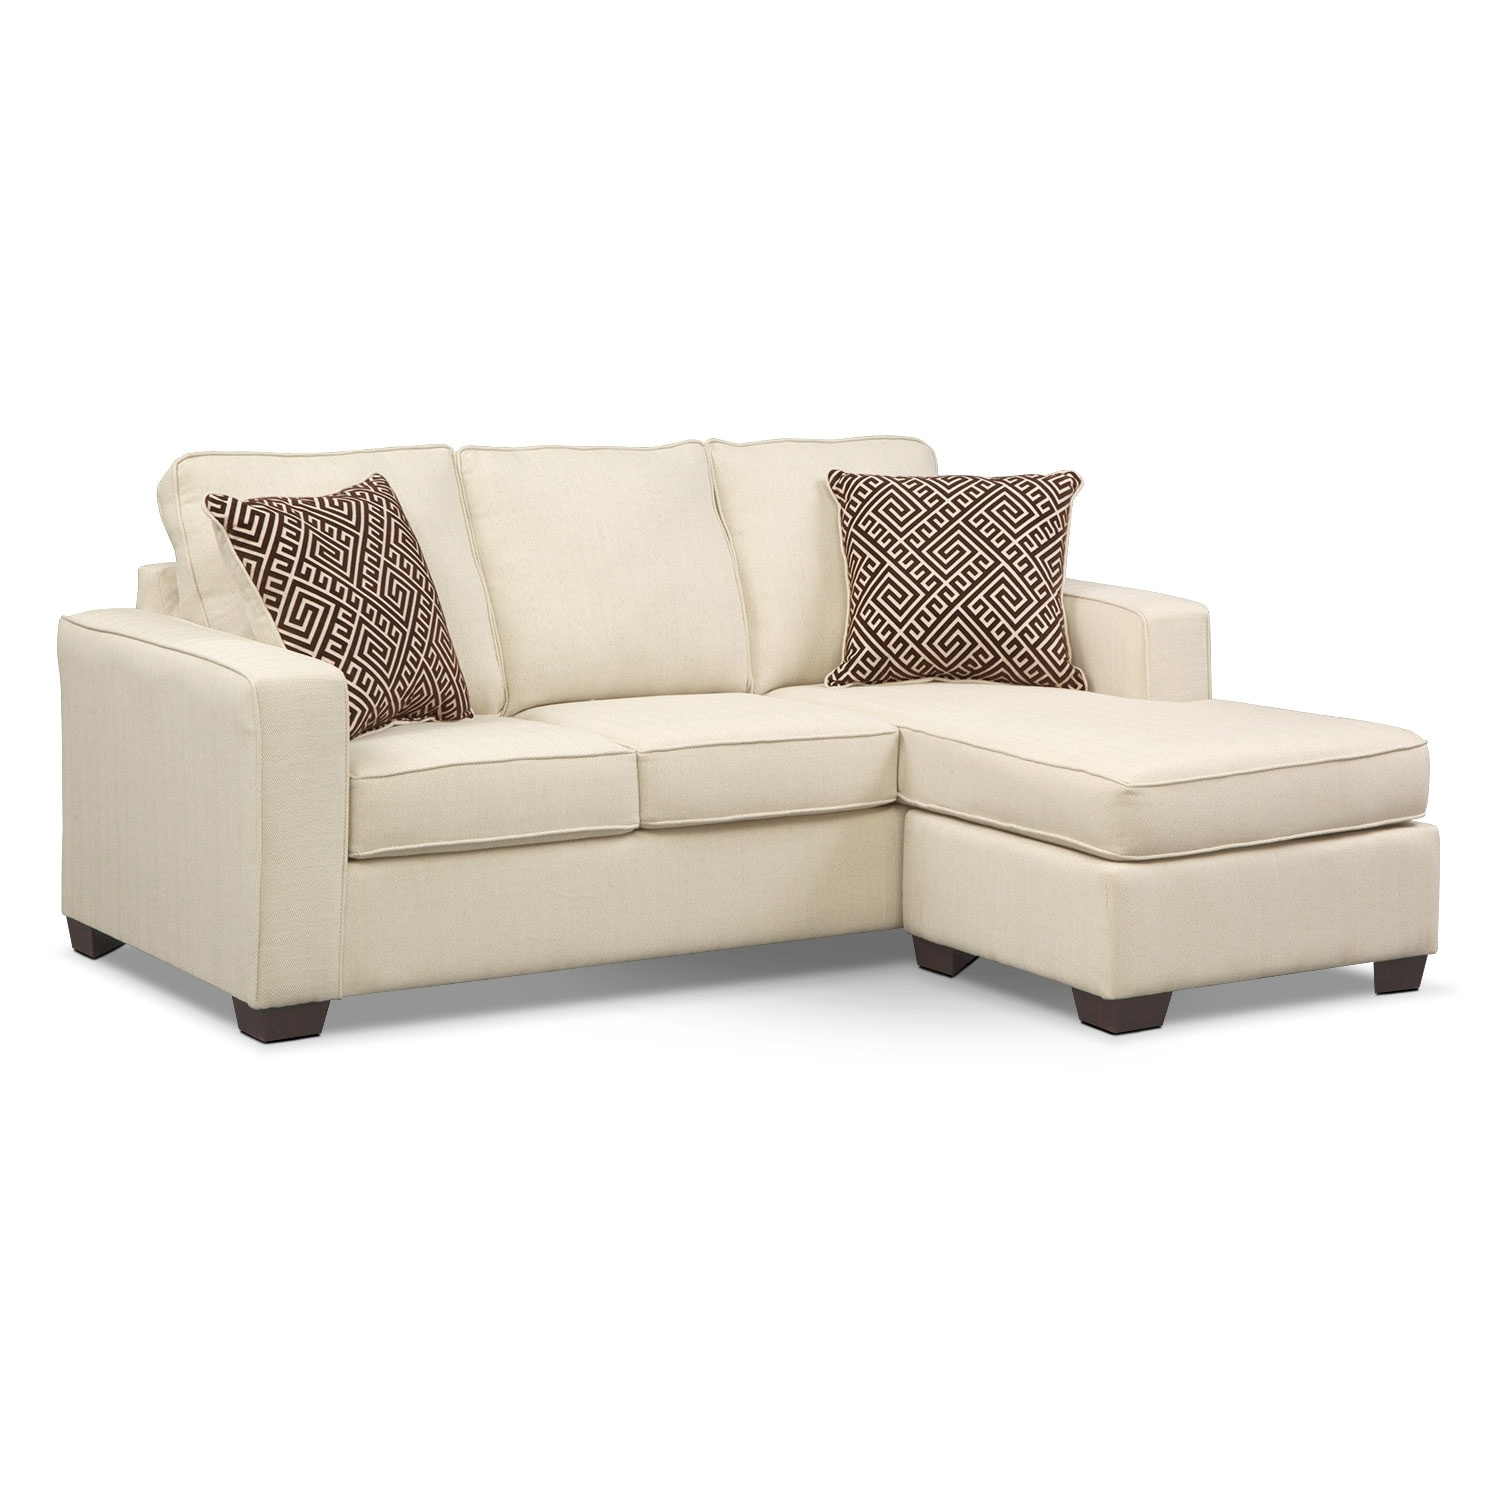 Living Room Furniture - Sterling Innerspring Sleeper Sofa with Chaise - Beige